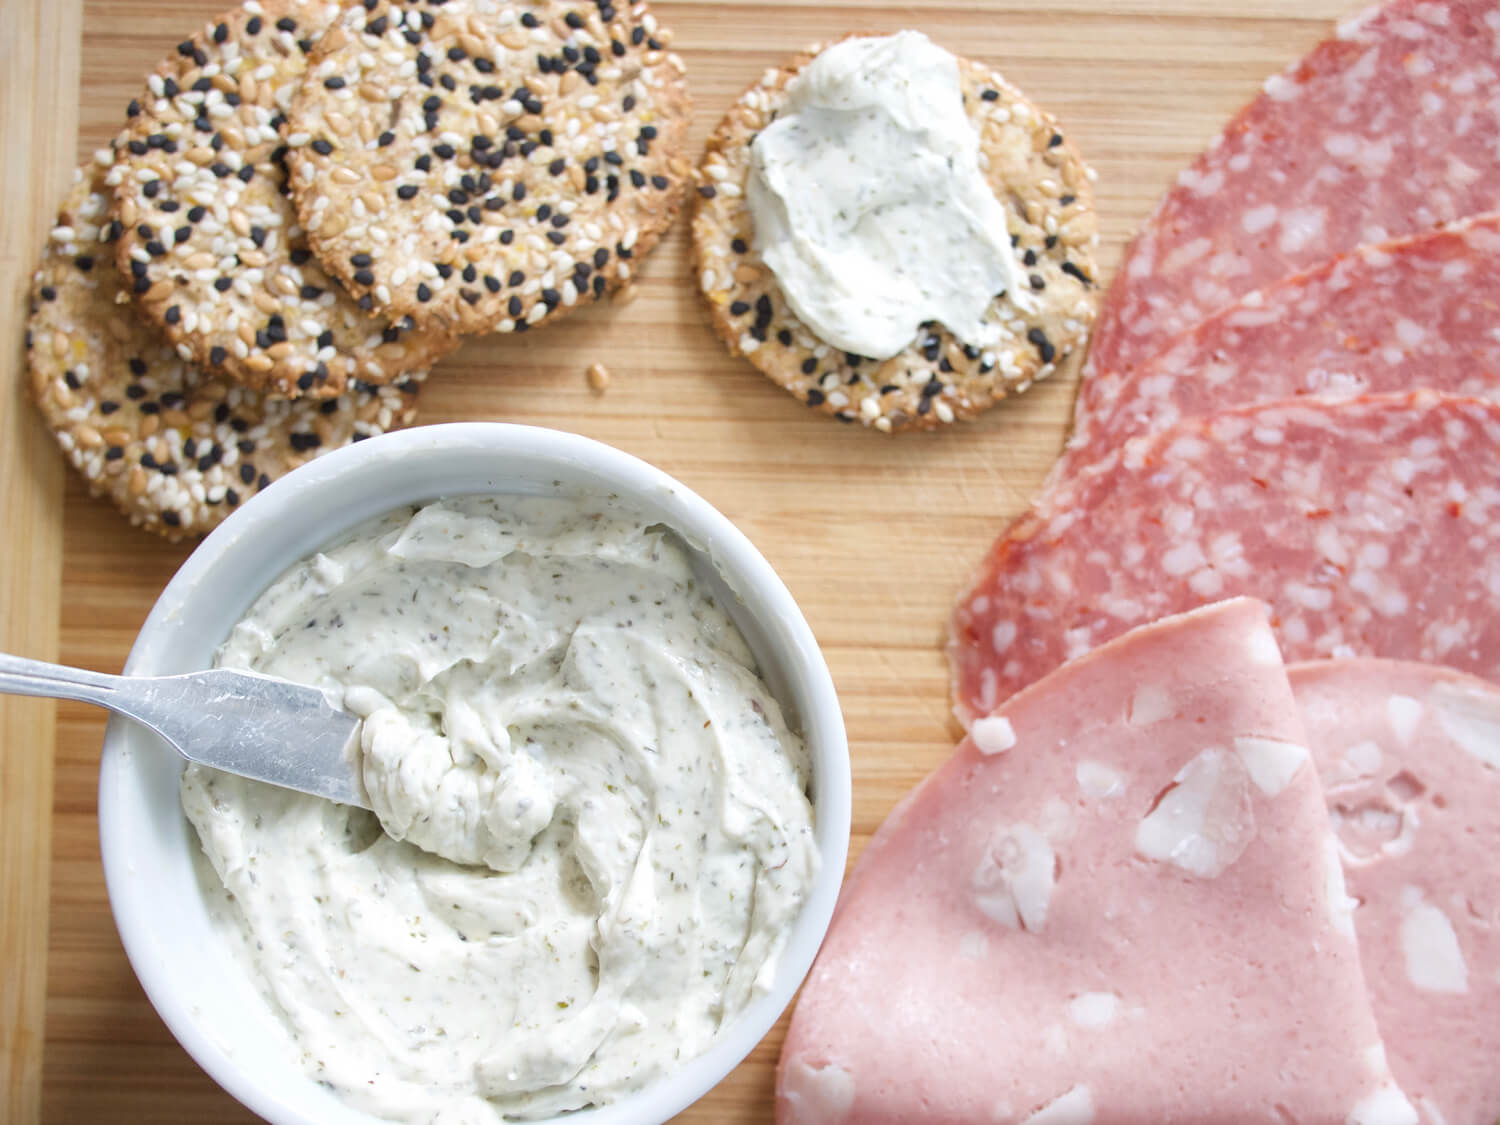 Spreadable Garlic and Herb Cheese